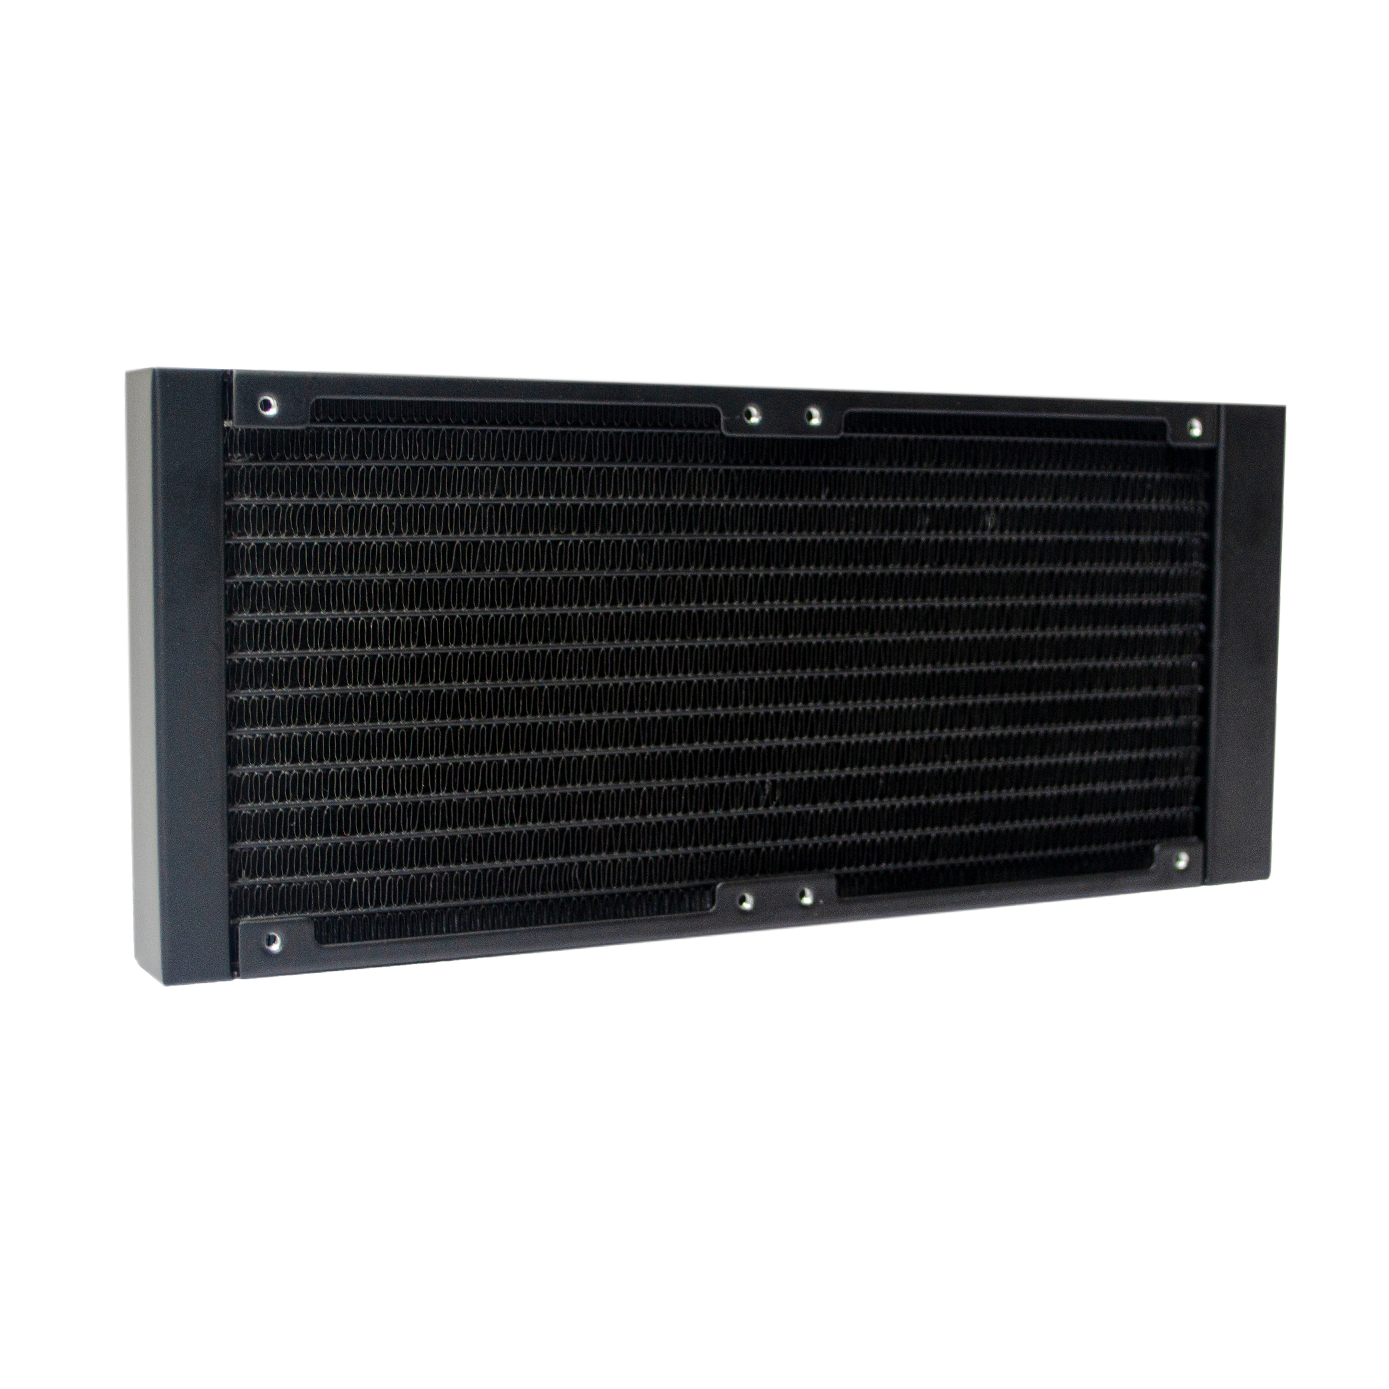 Digifast Notos N24 radiator